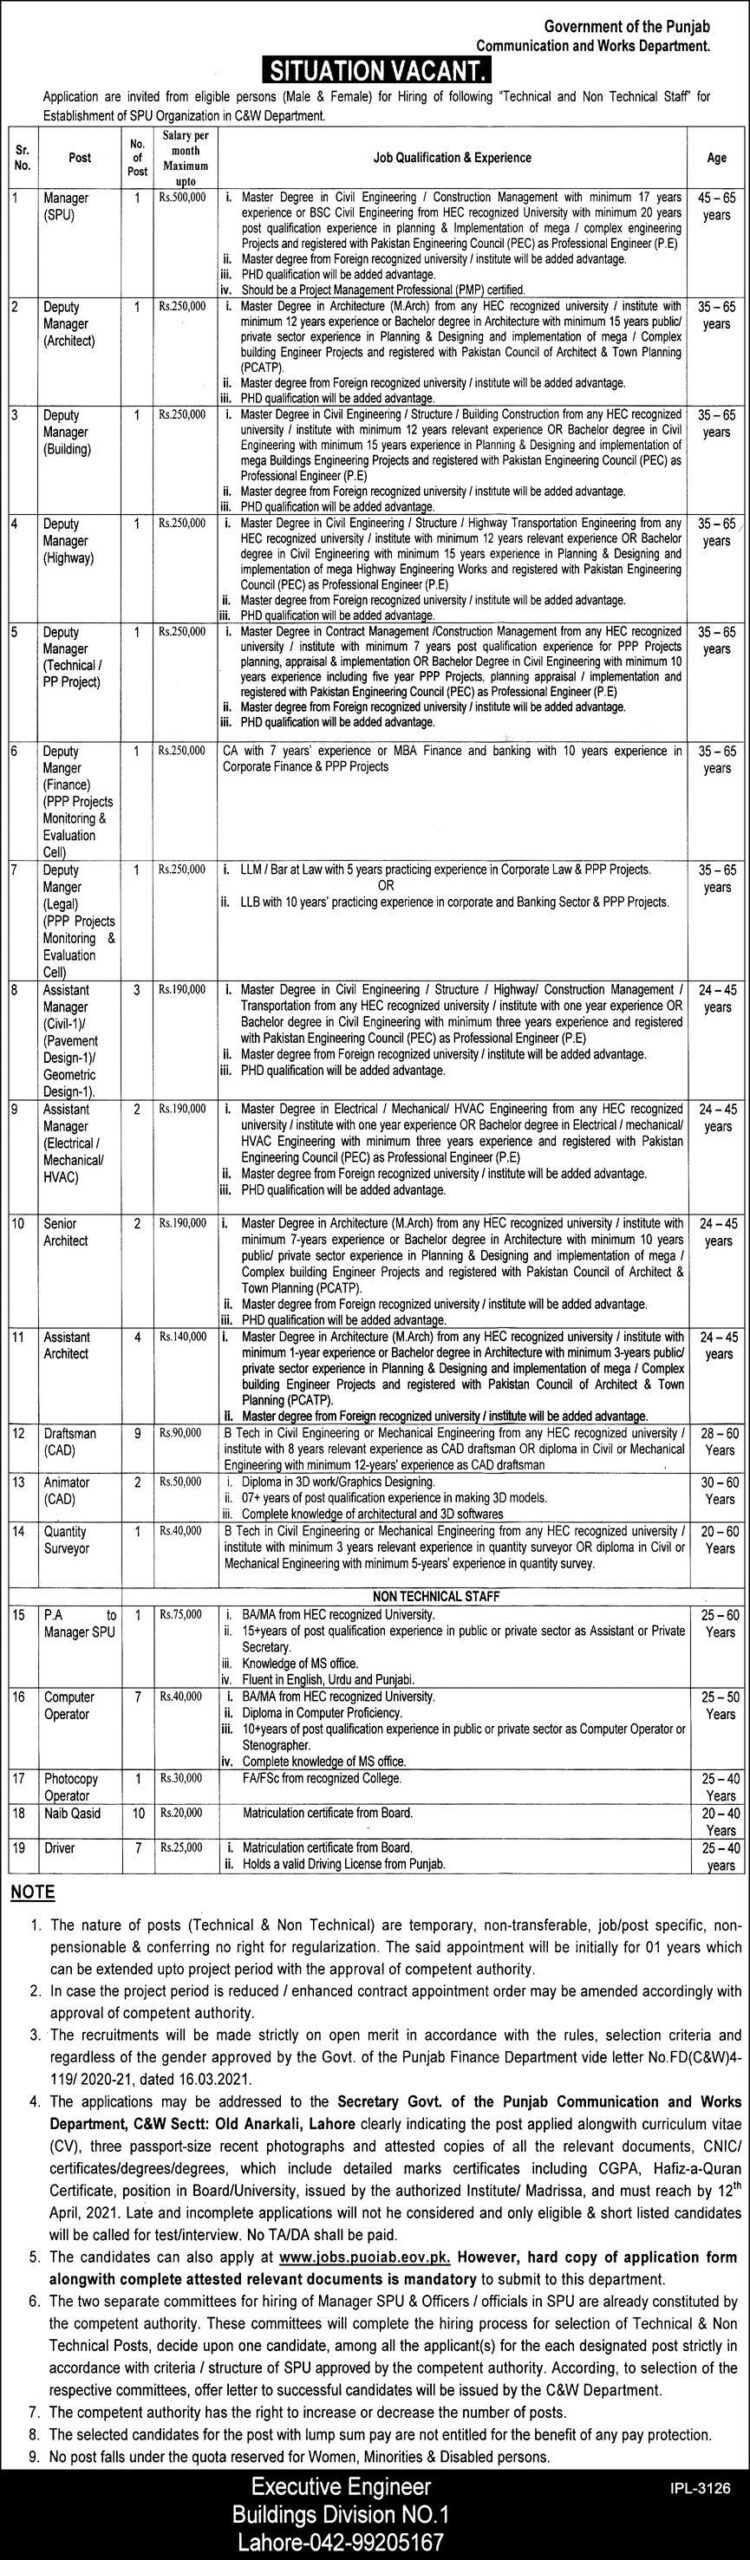 Jobs Announced in Communication and Works Department Government of the Punjab 2021